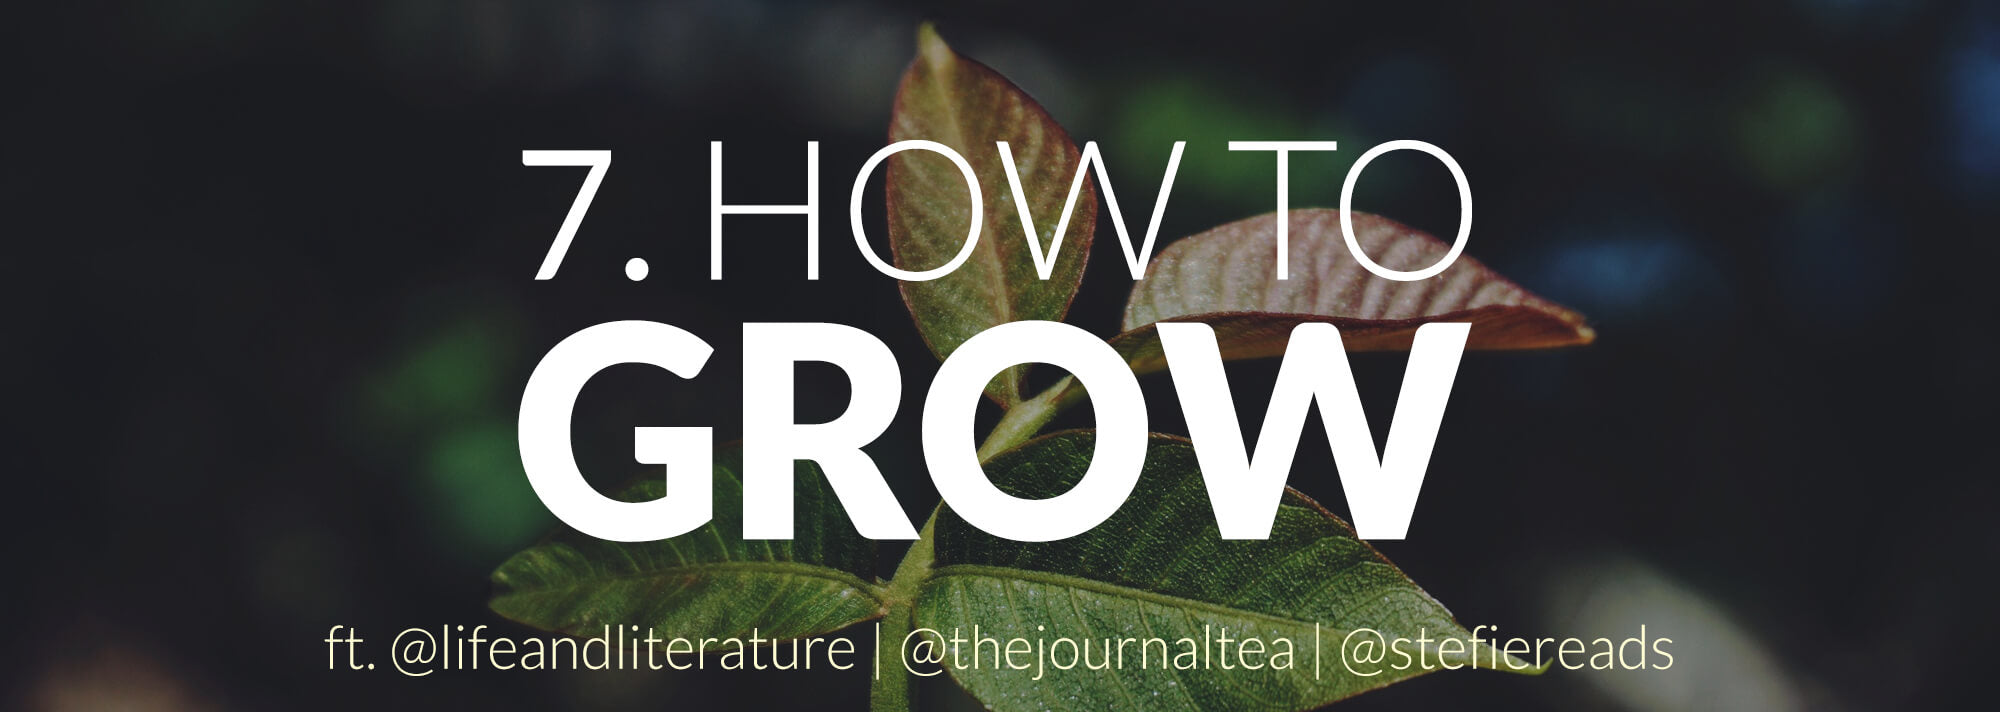 header image - how to grow